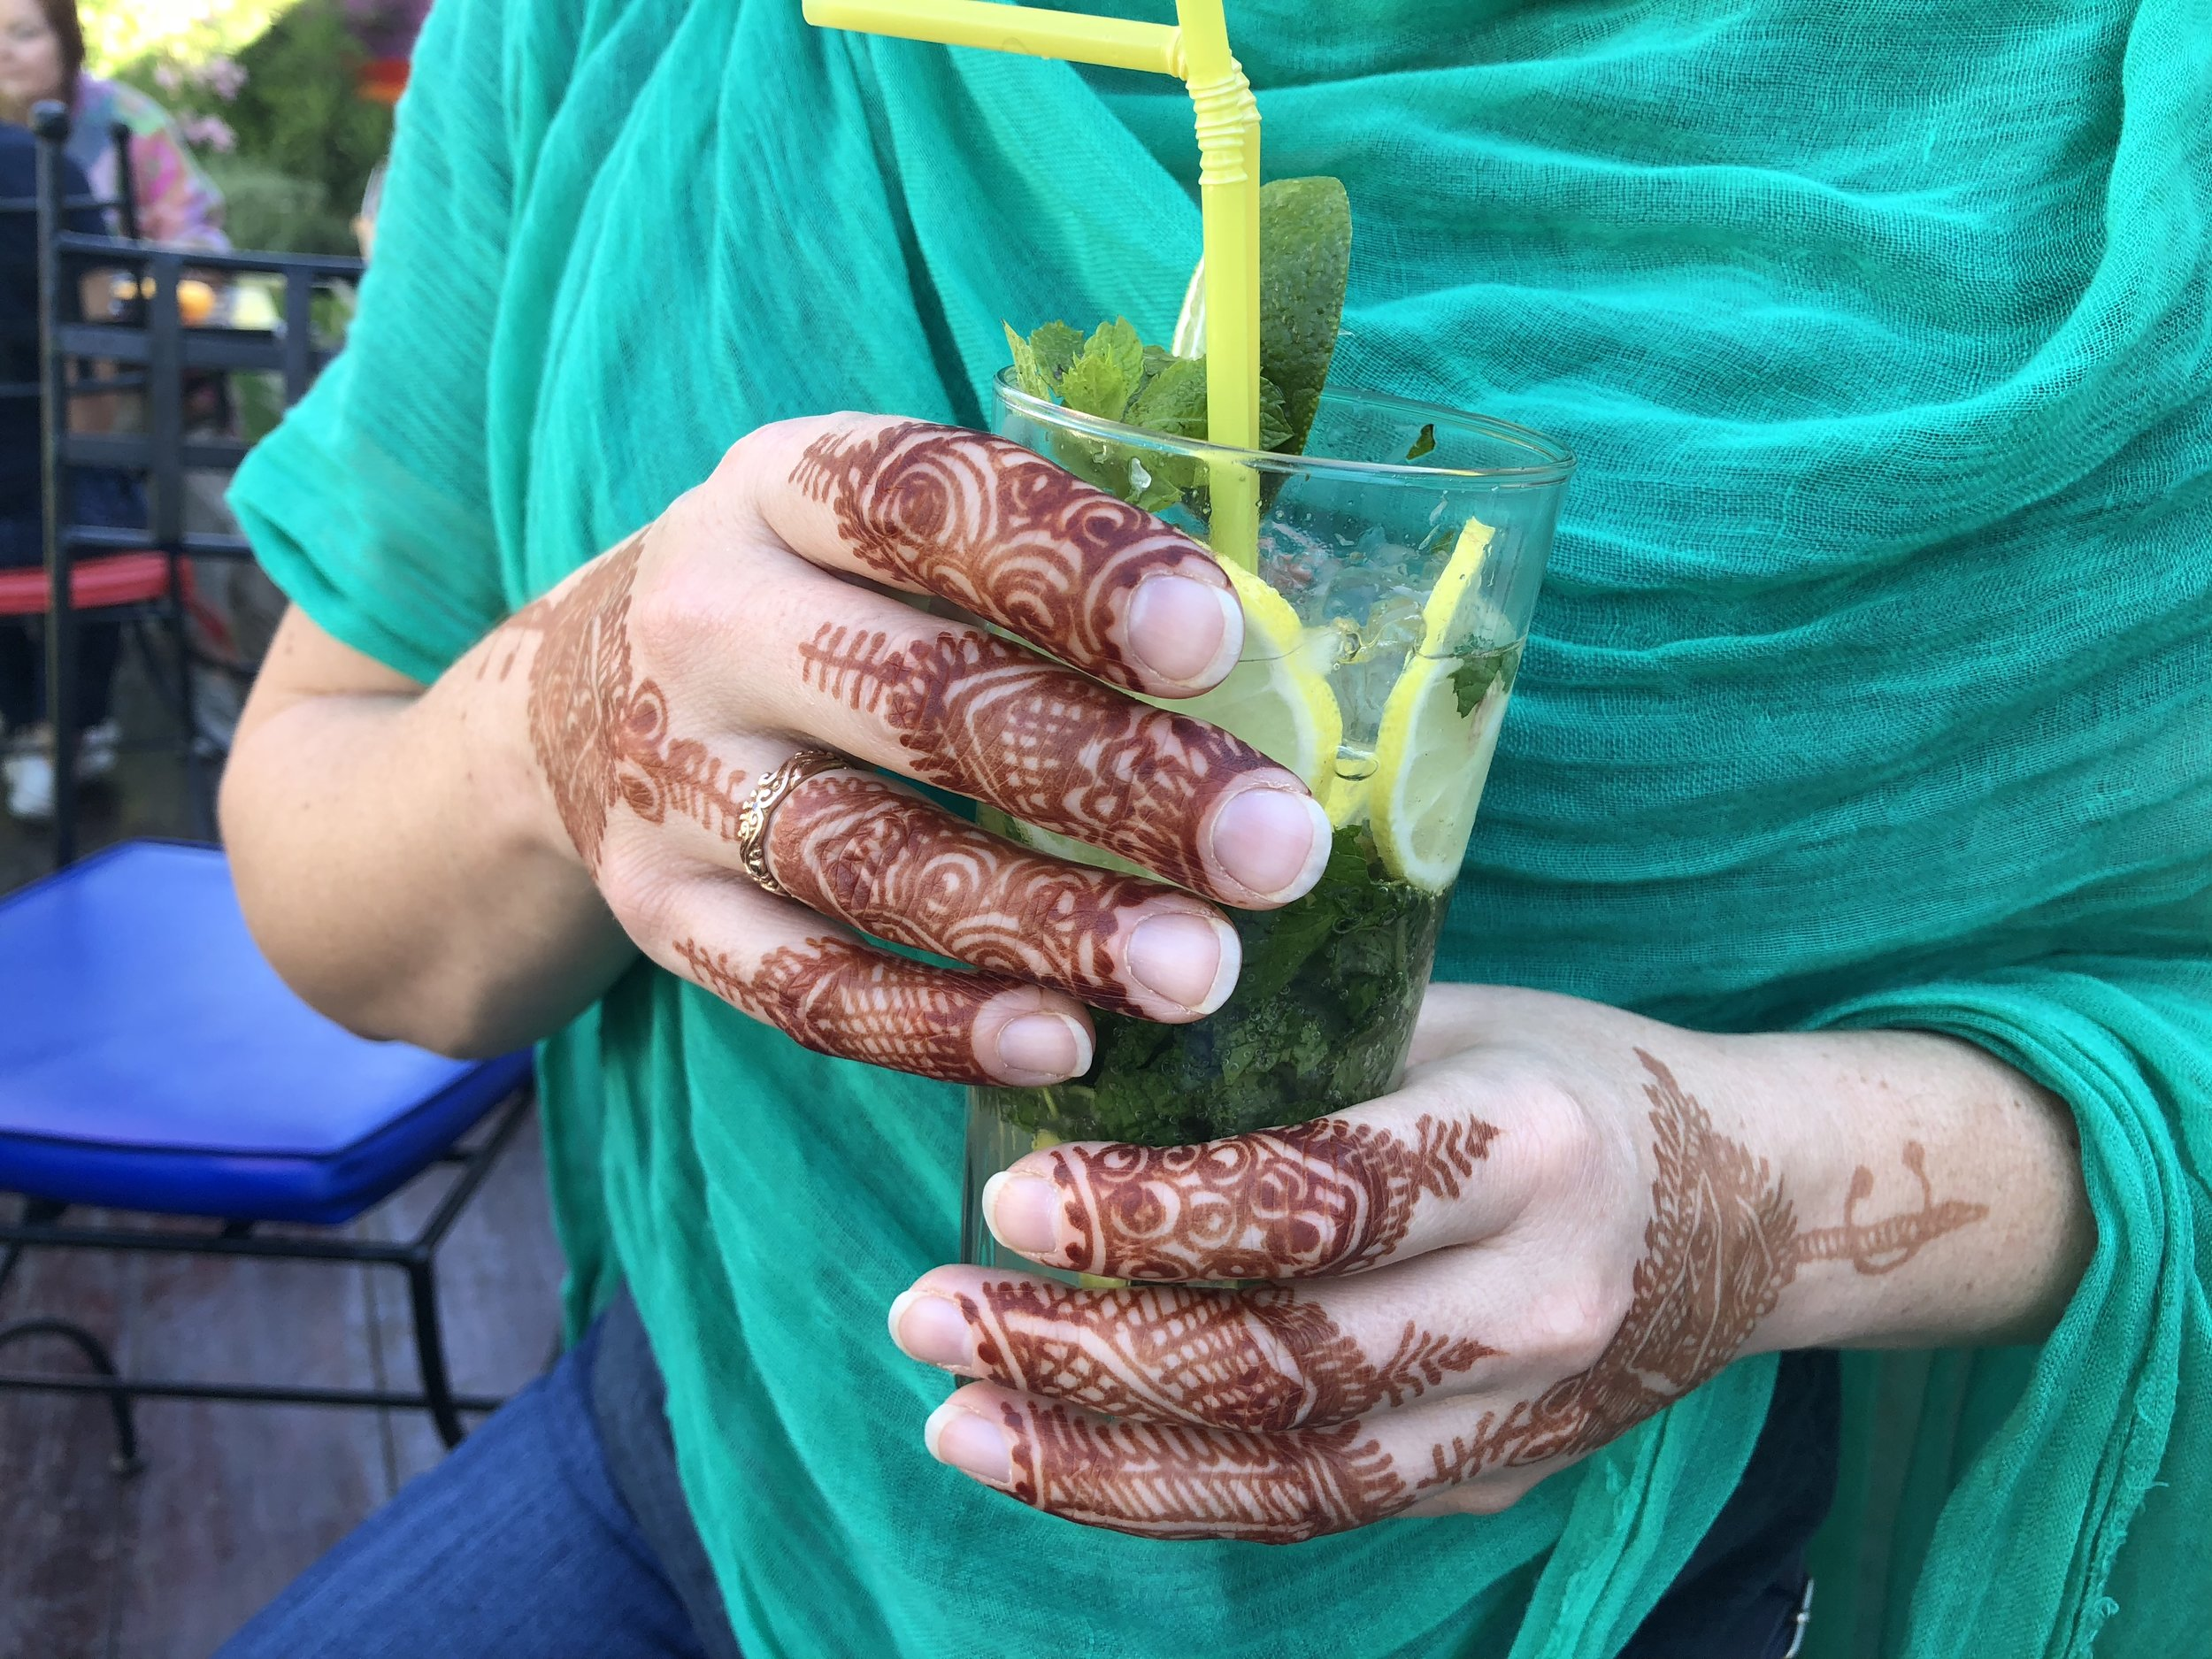 Combining two of my favorite things - henna and Morocco.